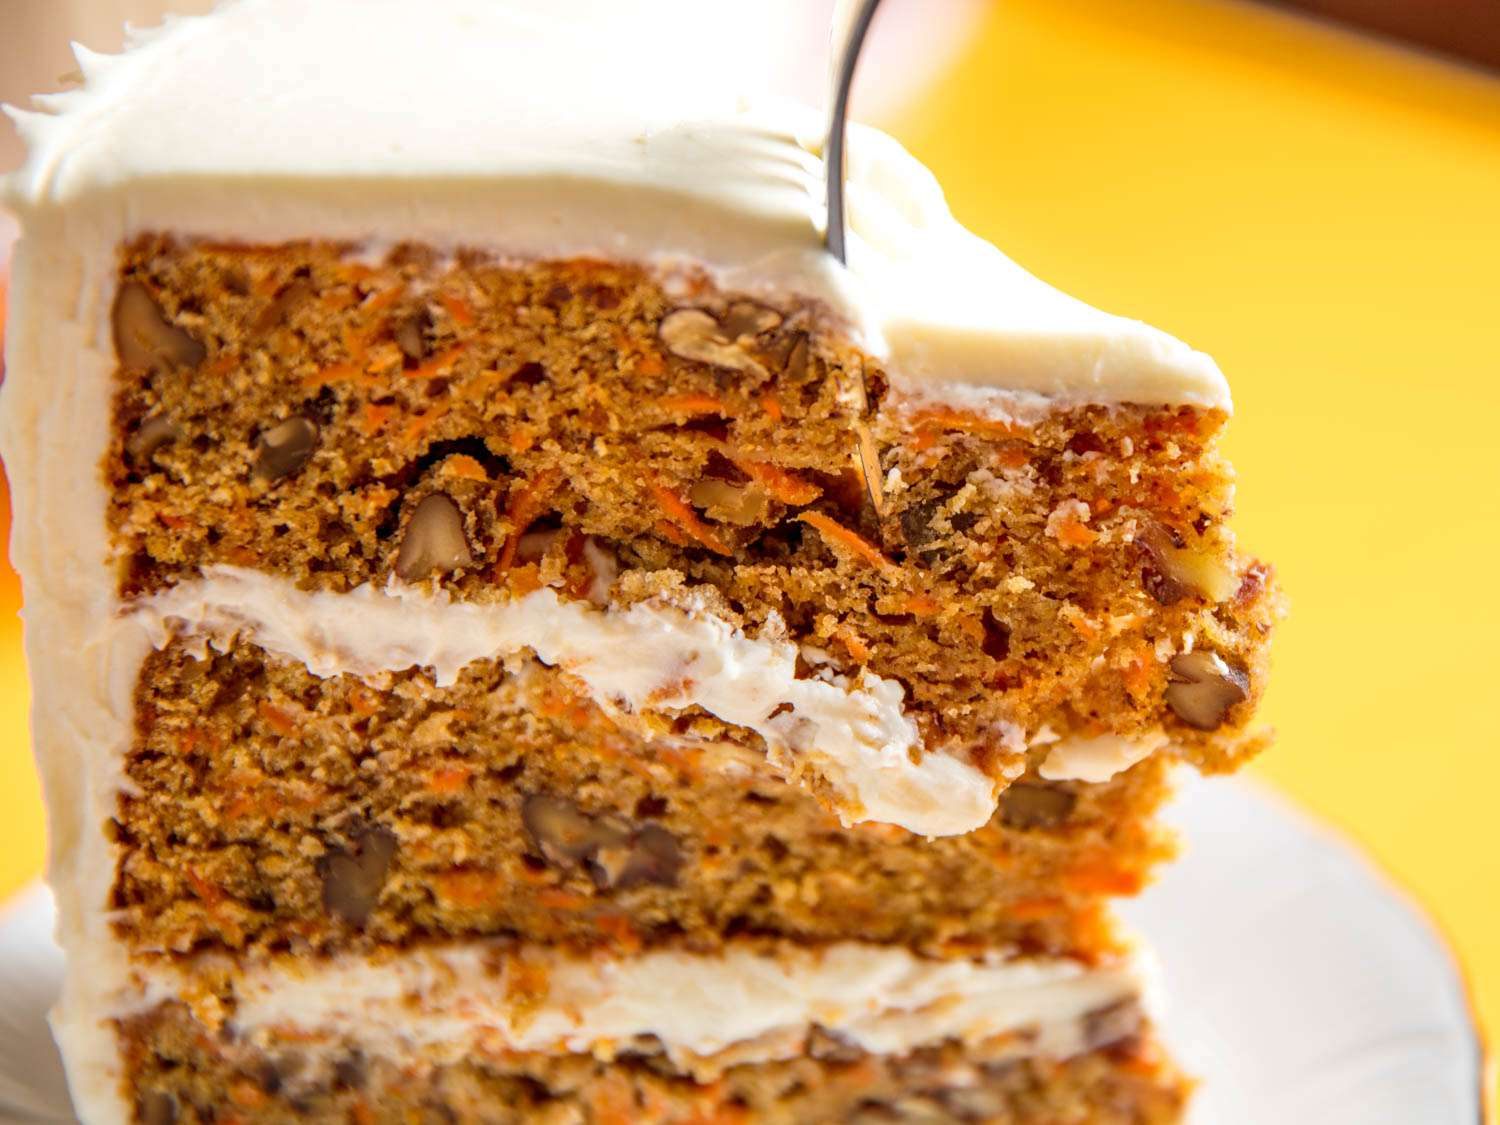 Close-up of a fork cutting into a wedge of carrot layer cake